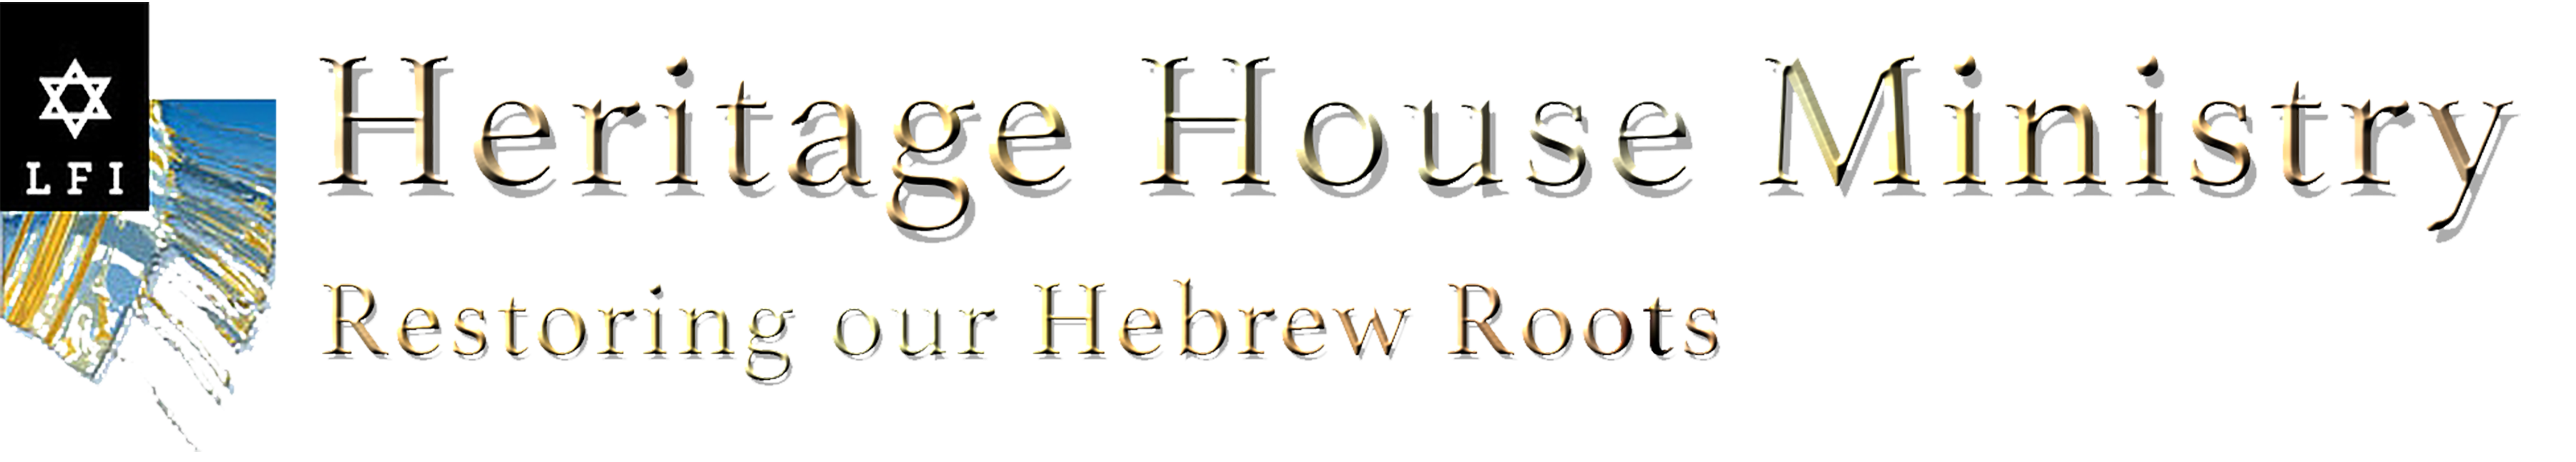 Heritage House Ministries